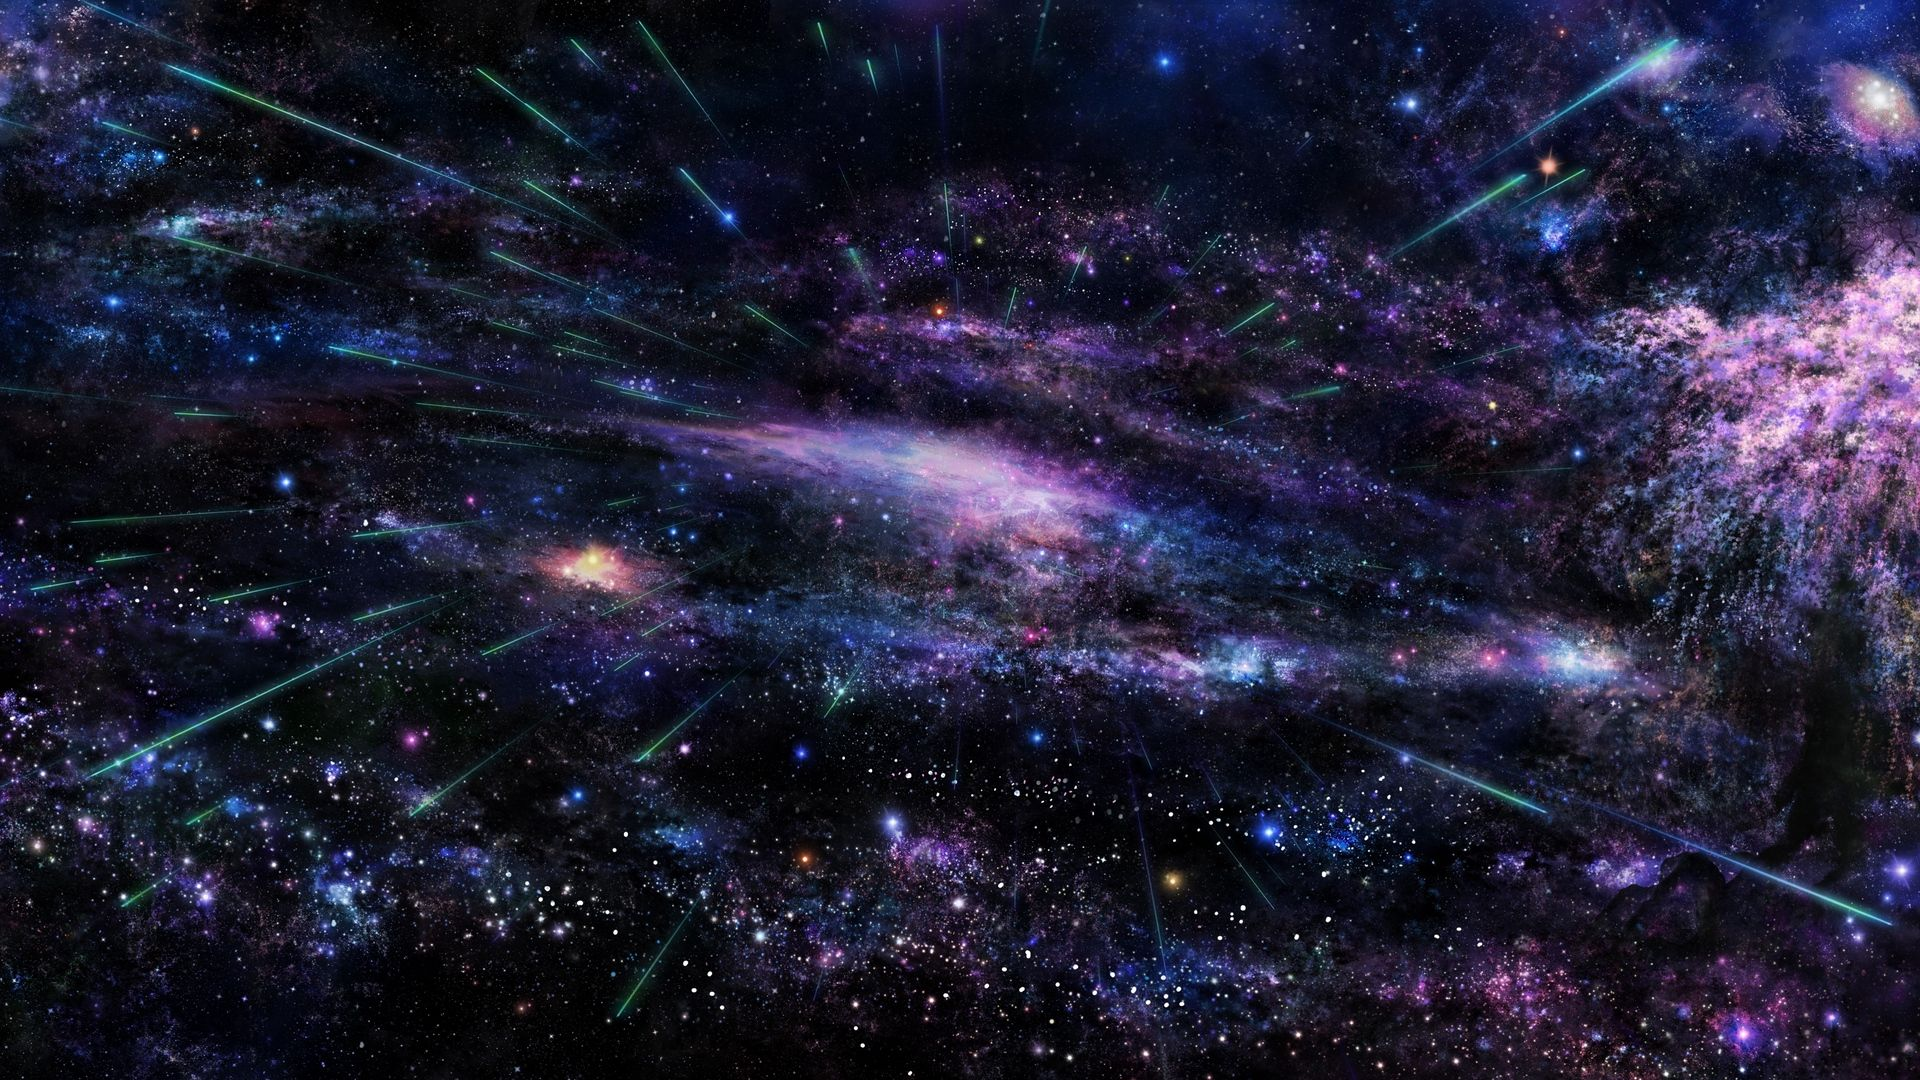 High Resolution Space Image hd wallpaper